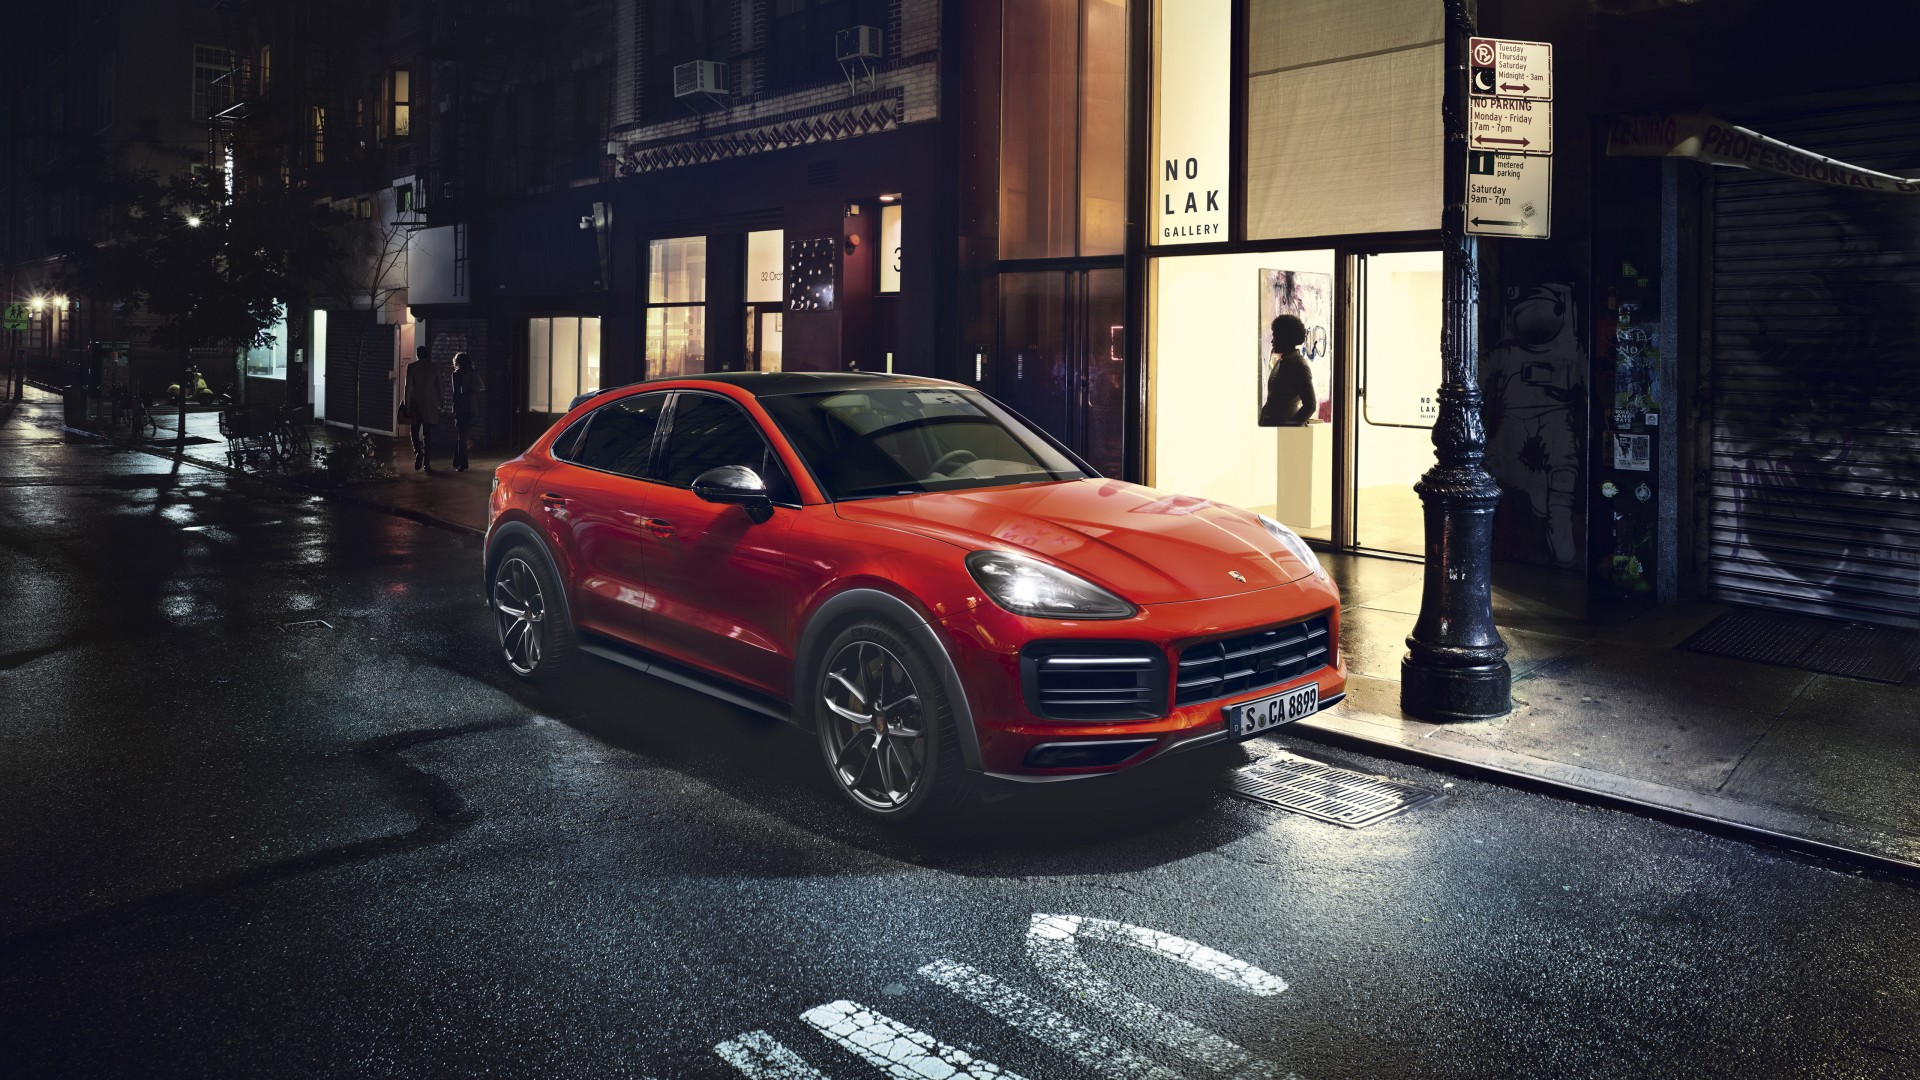 Porsche Cayenne Coupe 2019 4k Wallpaper Hd Car